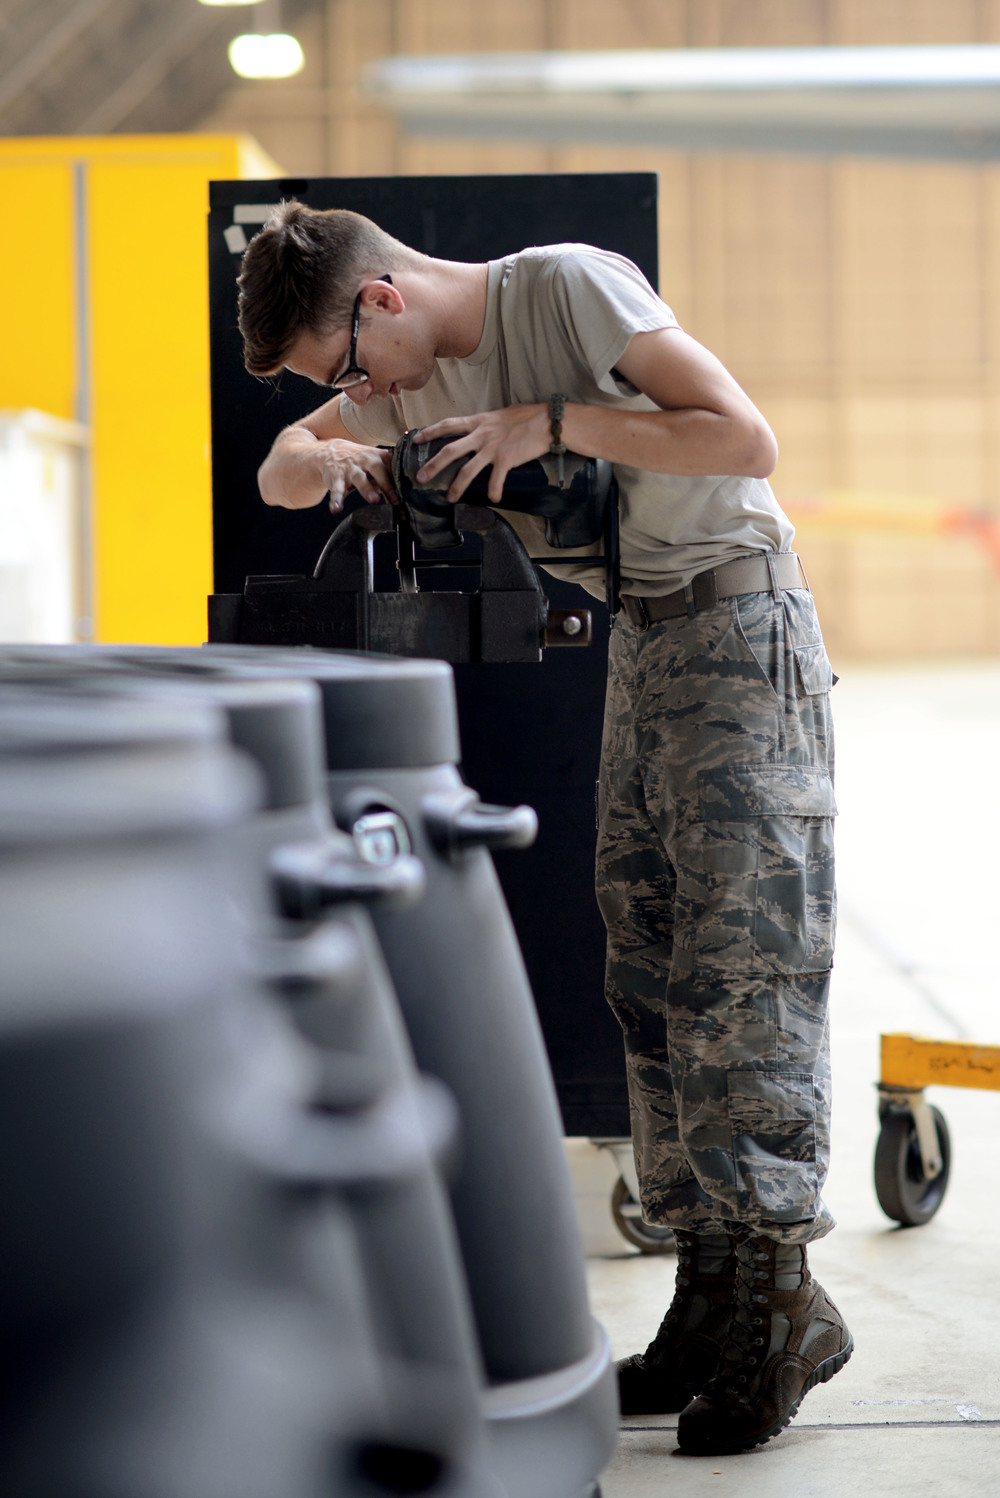 Senior Airman Michael Dalleo, 374th Maintenance Squadron crew chief, inspects a cushion from a C-130 Hercules, June 16, 2015, at Yokota Air Base, Japan. As part of the yearly isochronal inspection of a C-130 Hercules, 374 MXS Airmen worked to ensure the aircraft remains safe. (U.S. Air Force photo by Airman 1st Class Delano Scott/Released)